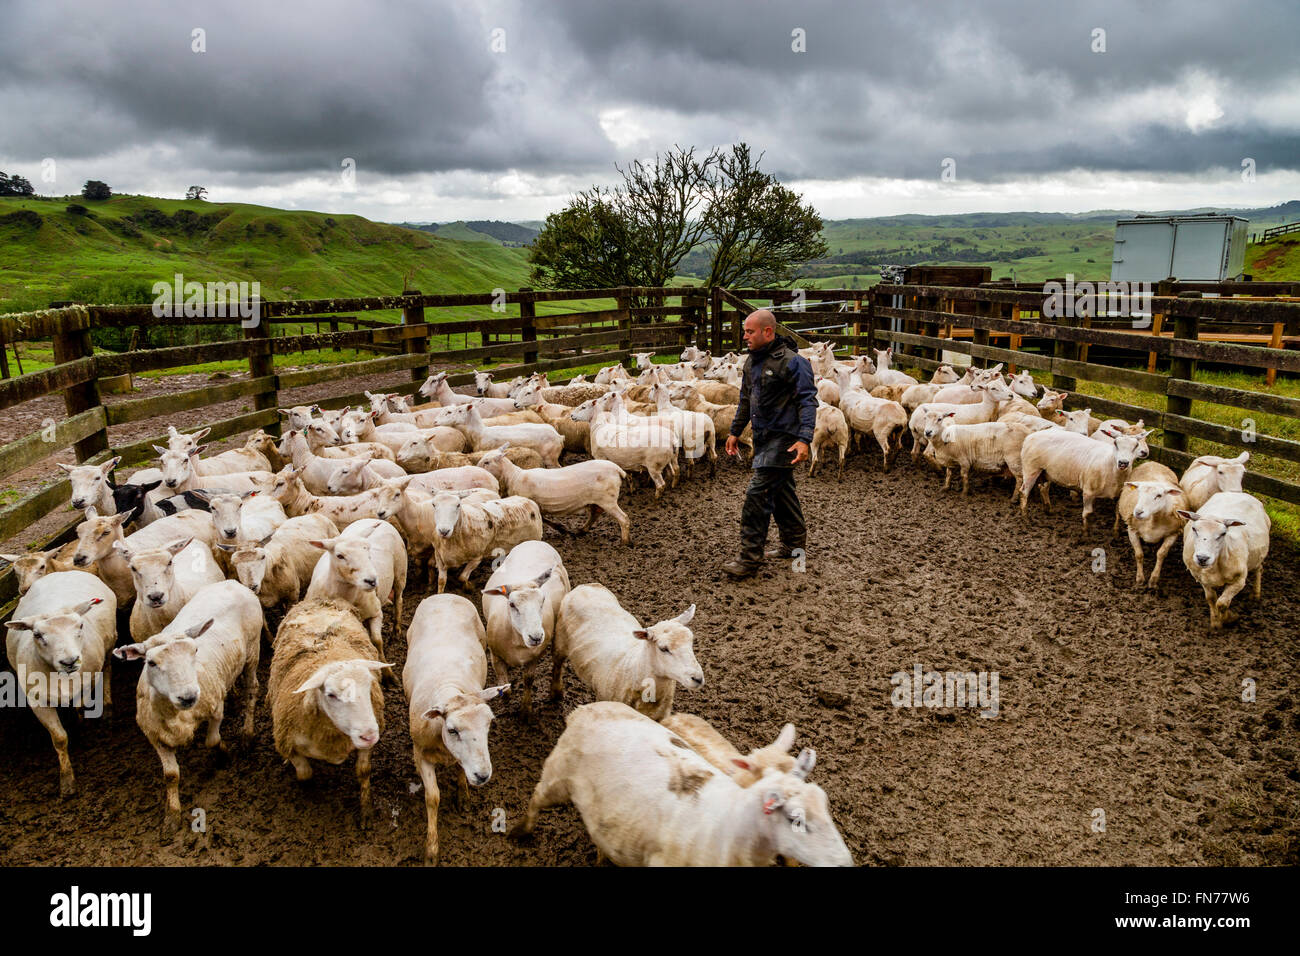 A Sheep Farmer Herds Sheep On To A Lorry, Sheep Farm, Pukekohe, New Zealand - Stock Image